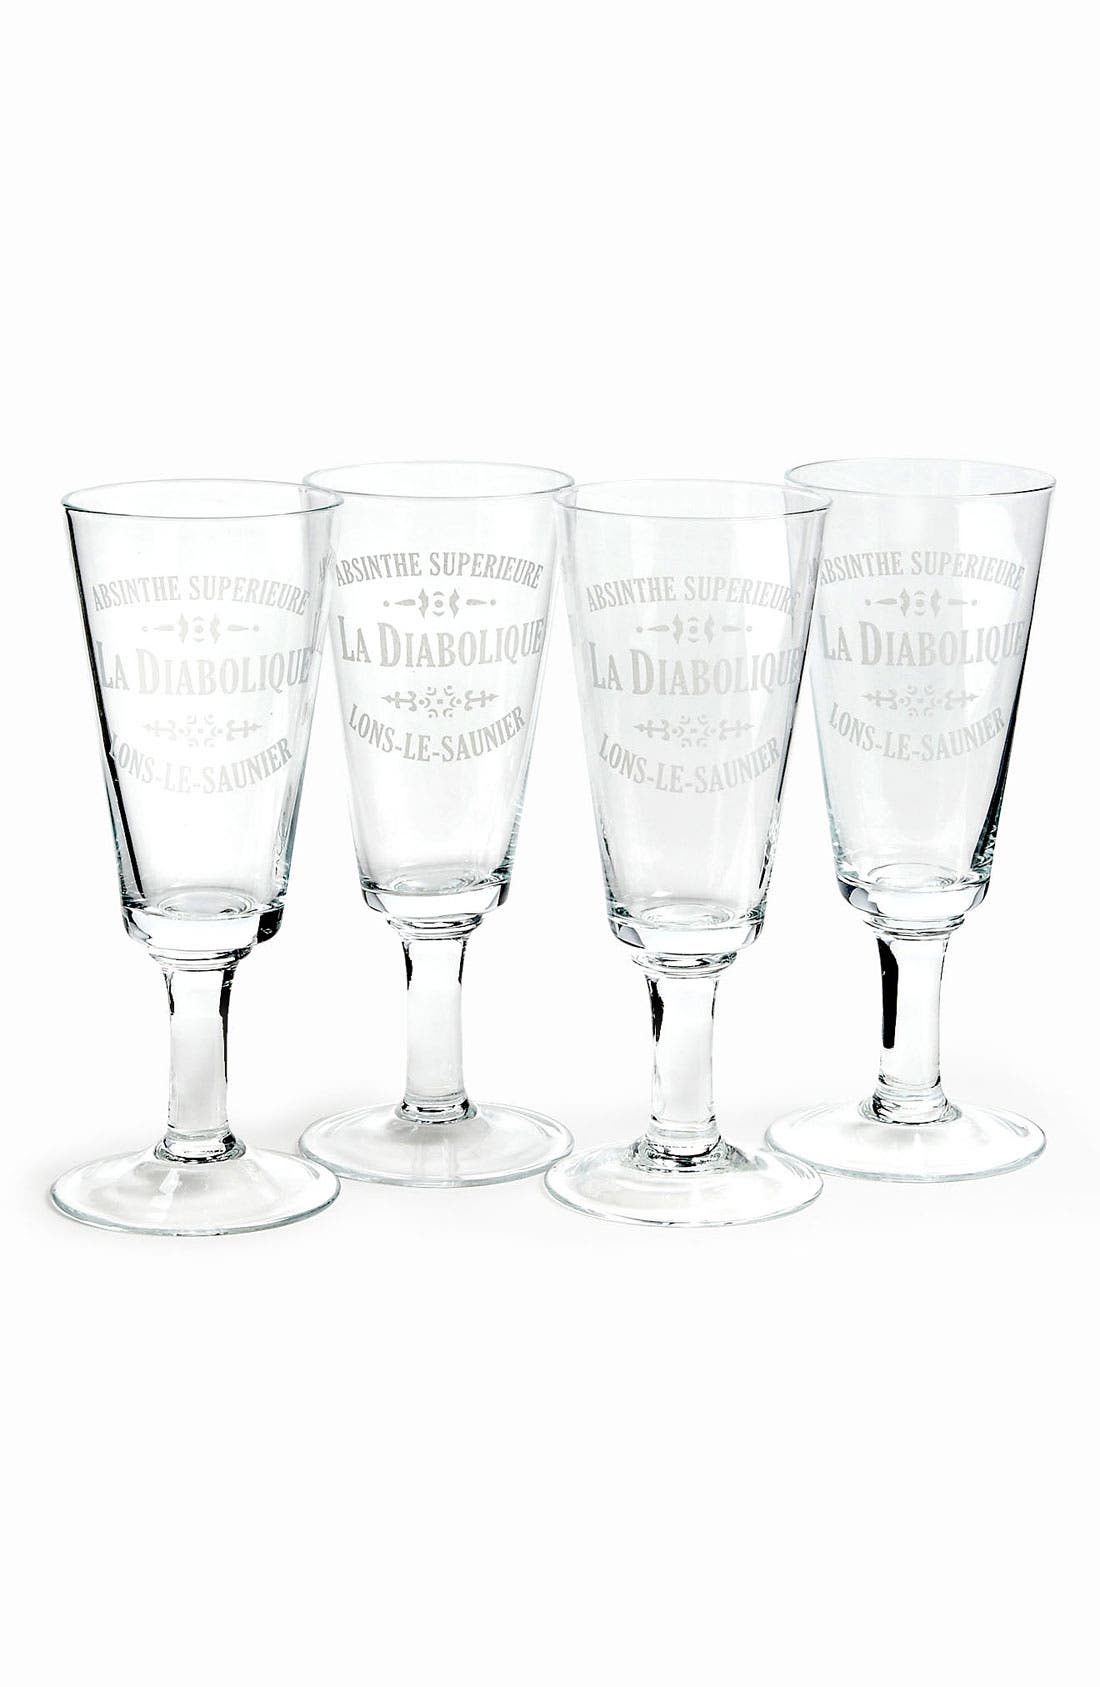 Alternate Image 1 Selected - 'La Diabolique' Absinthe Glasses (Set of 4)